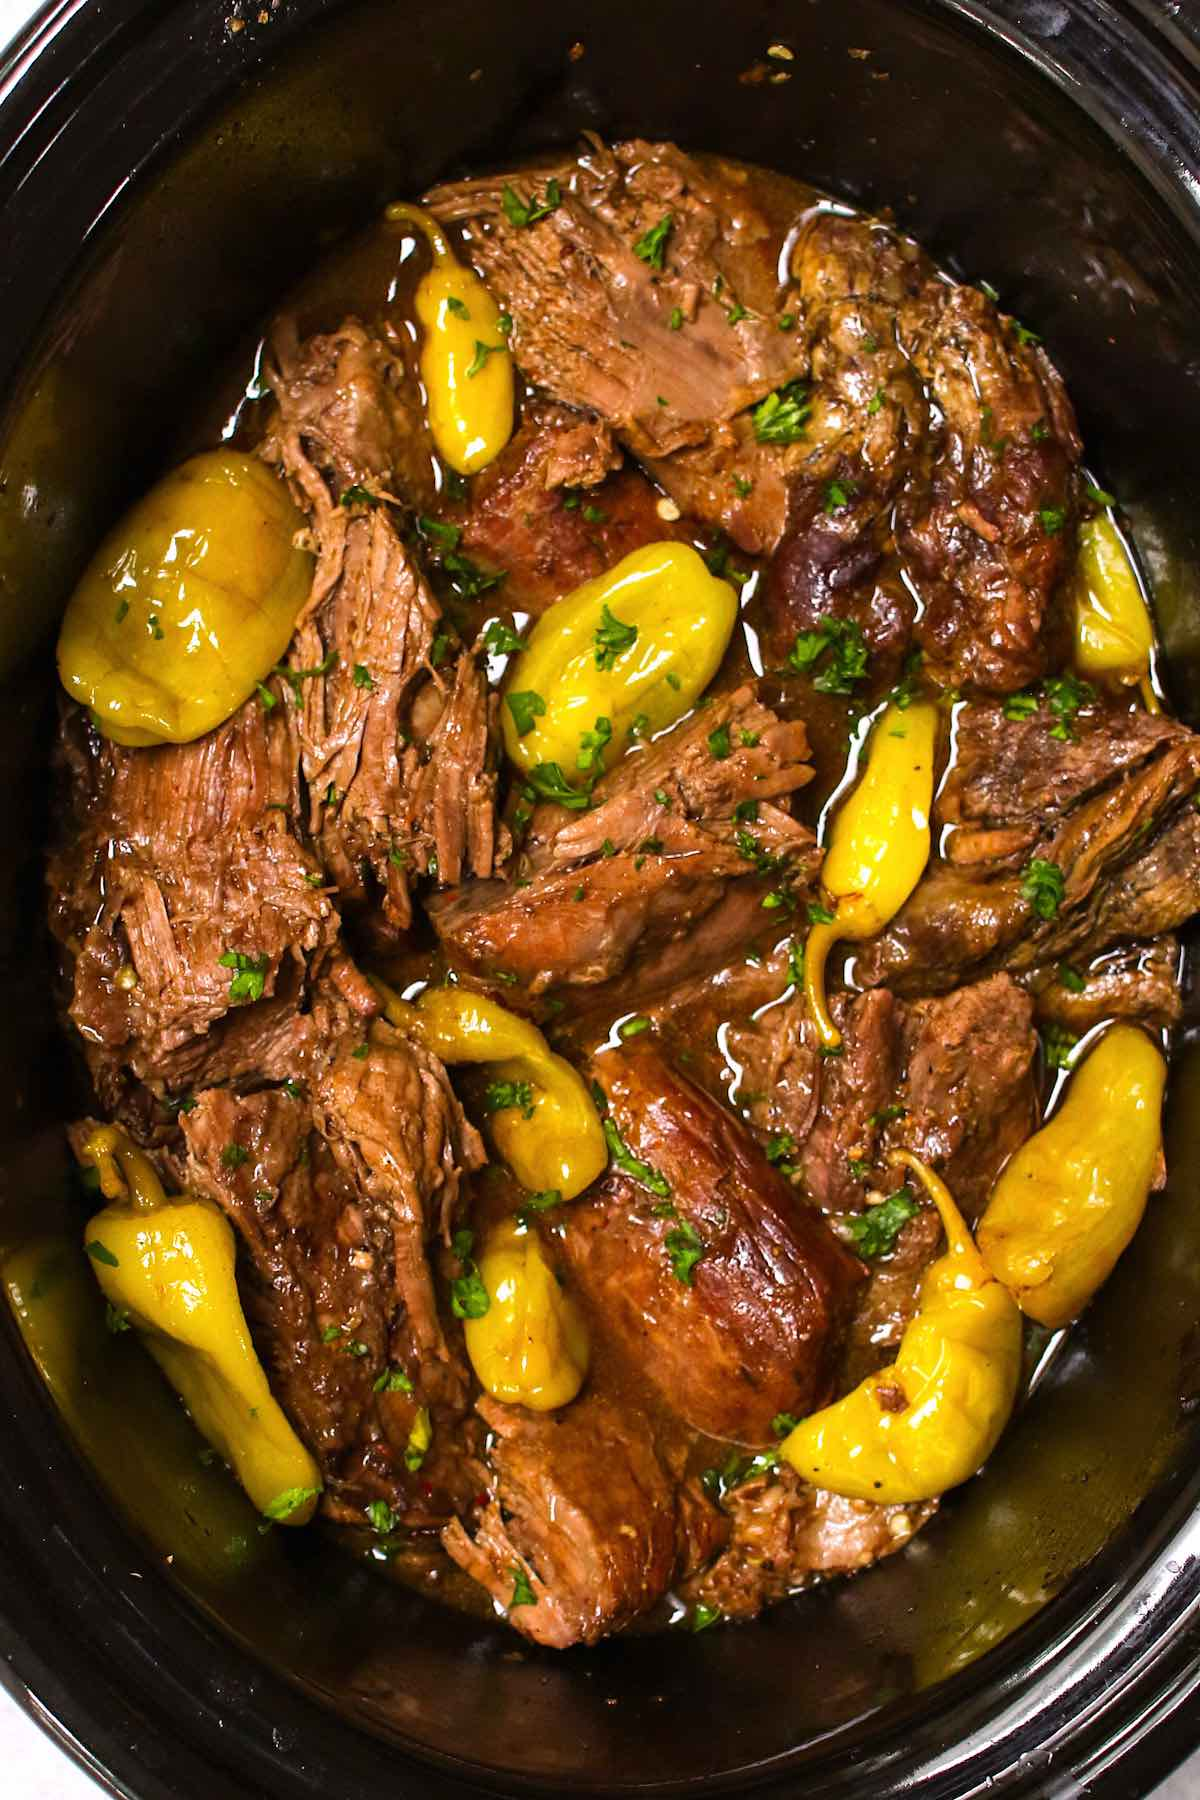 Fork tender cooked Mississippi pot roast in a slow cooker